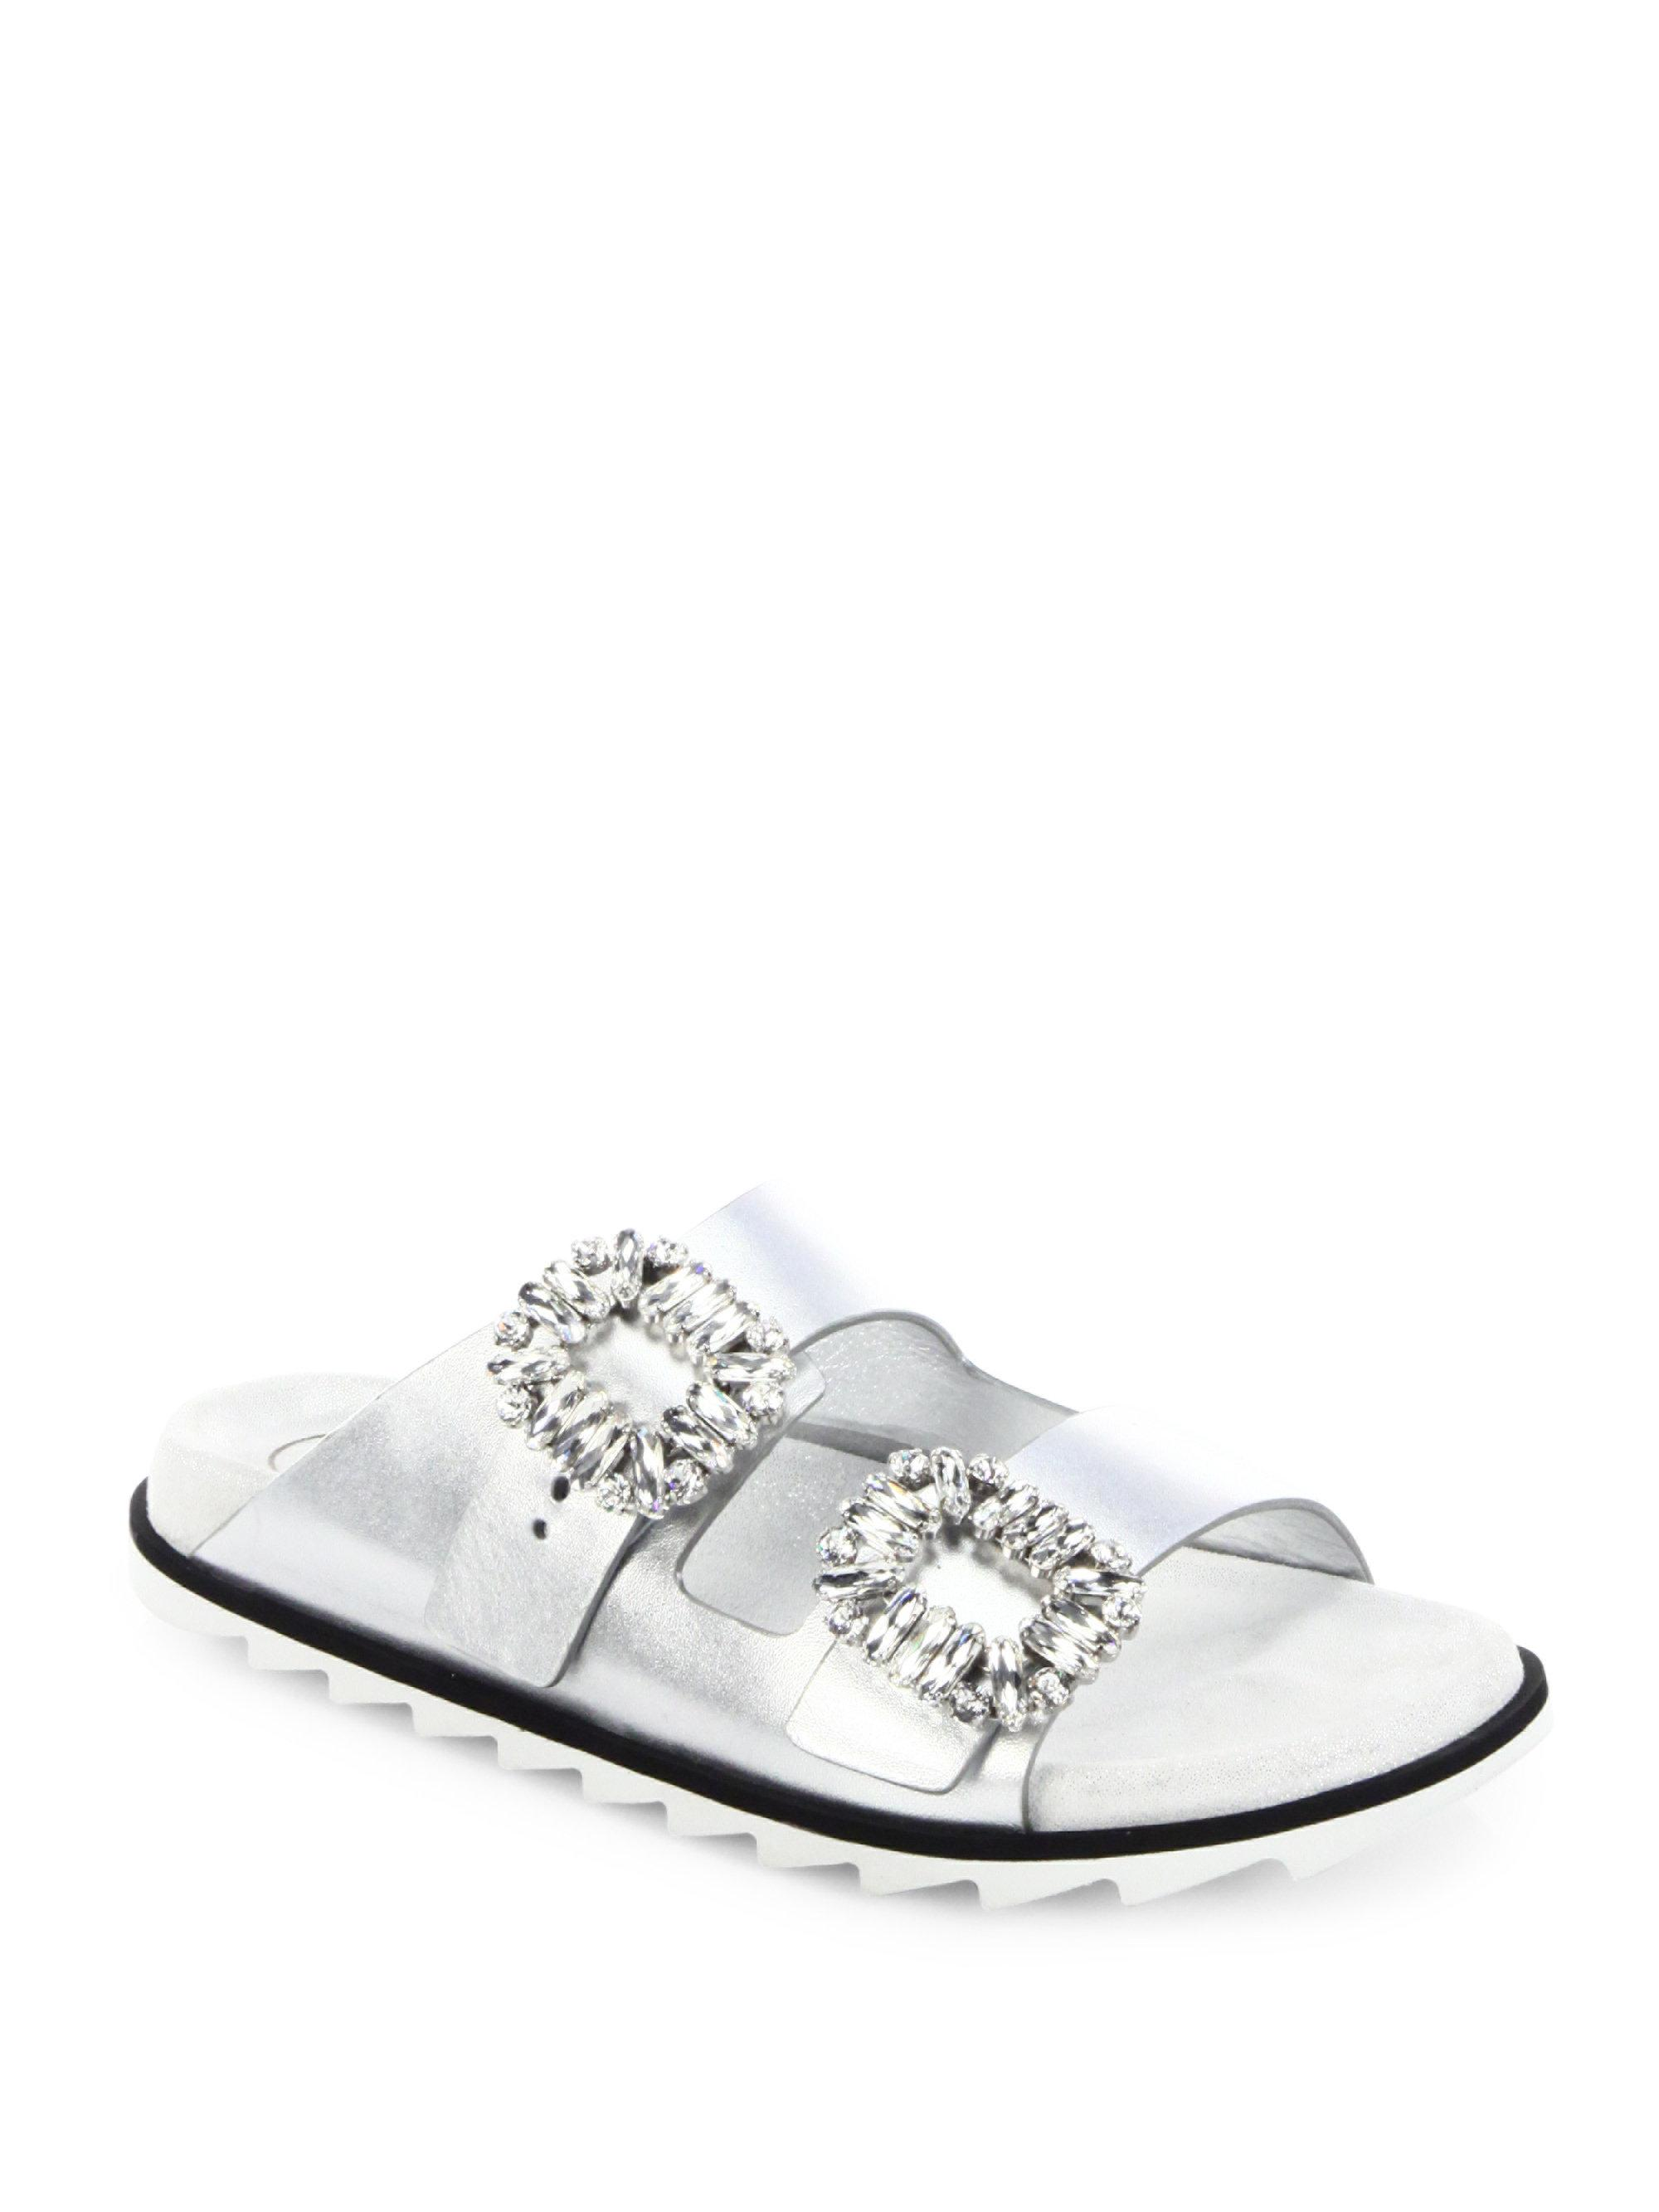 Roger Vivier Slidy Viv Crystal Buckle Metallic Leather Slides nwfMP